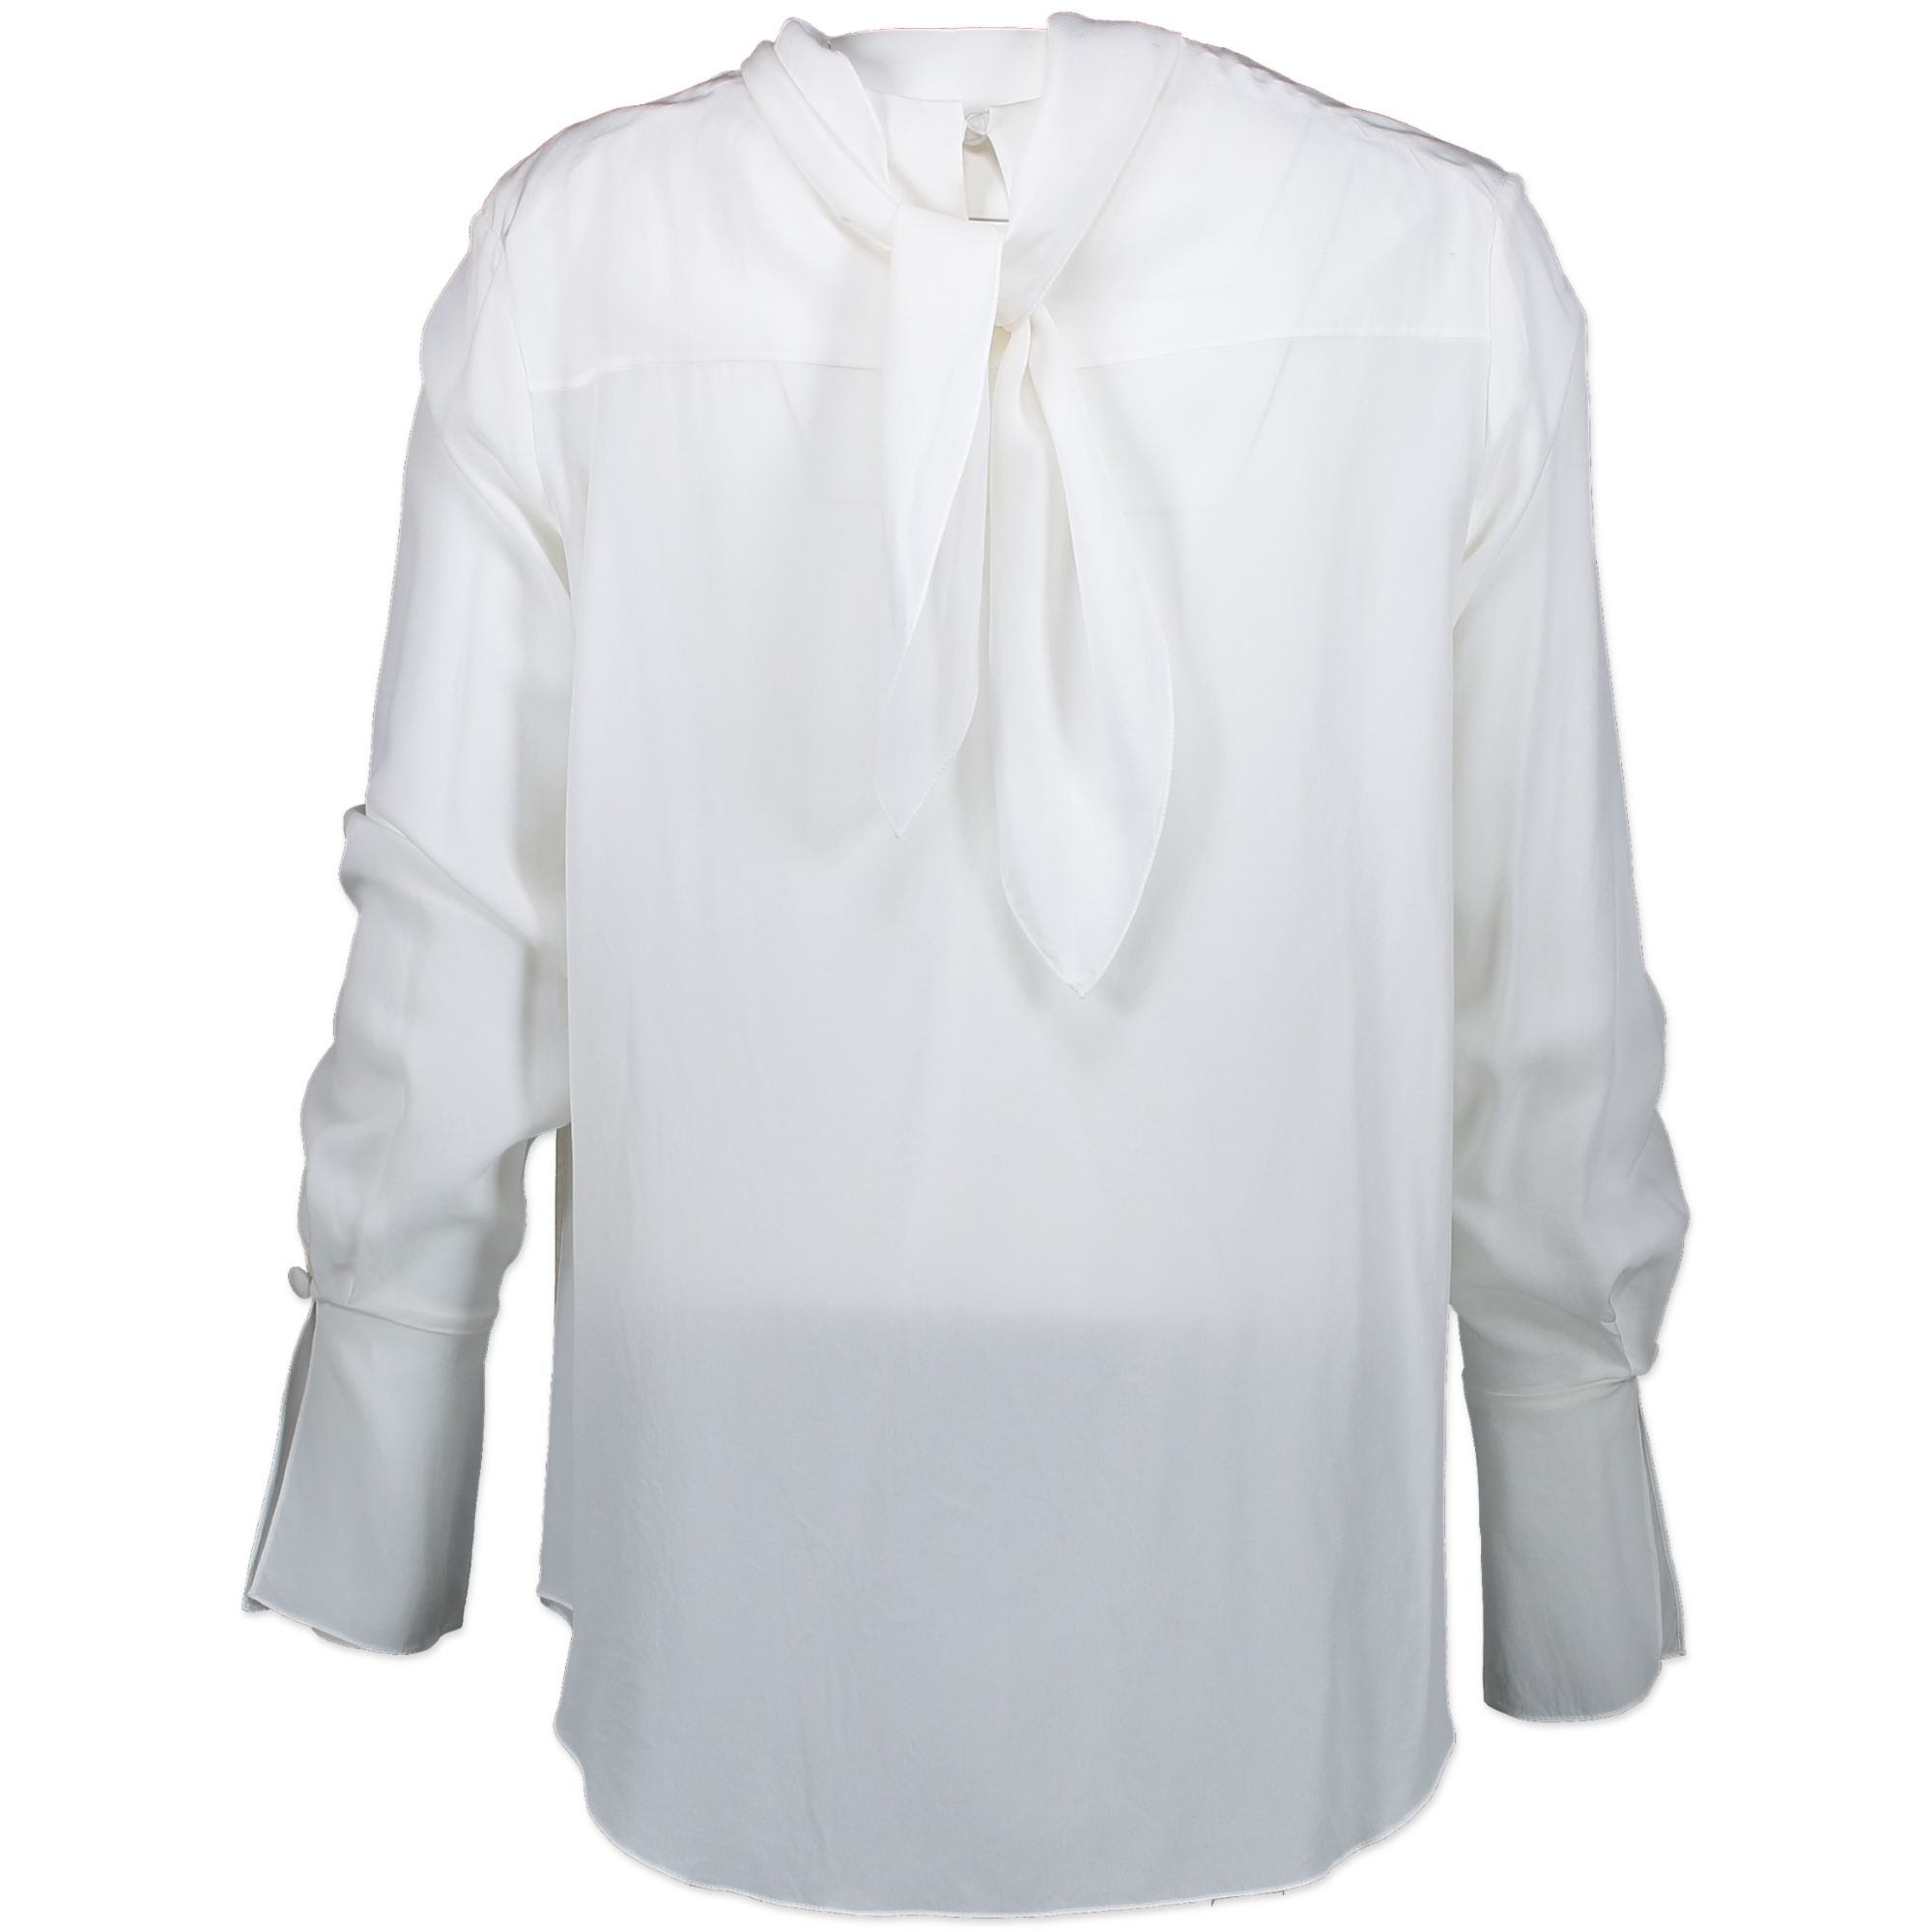 ca037e28e3e478 ... Chloé White Silk Top - 36 Buy authentic Secondhand silk top at the  right prices at